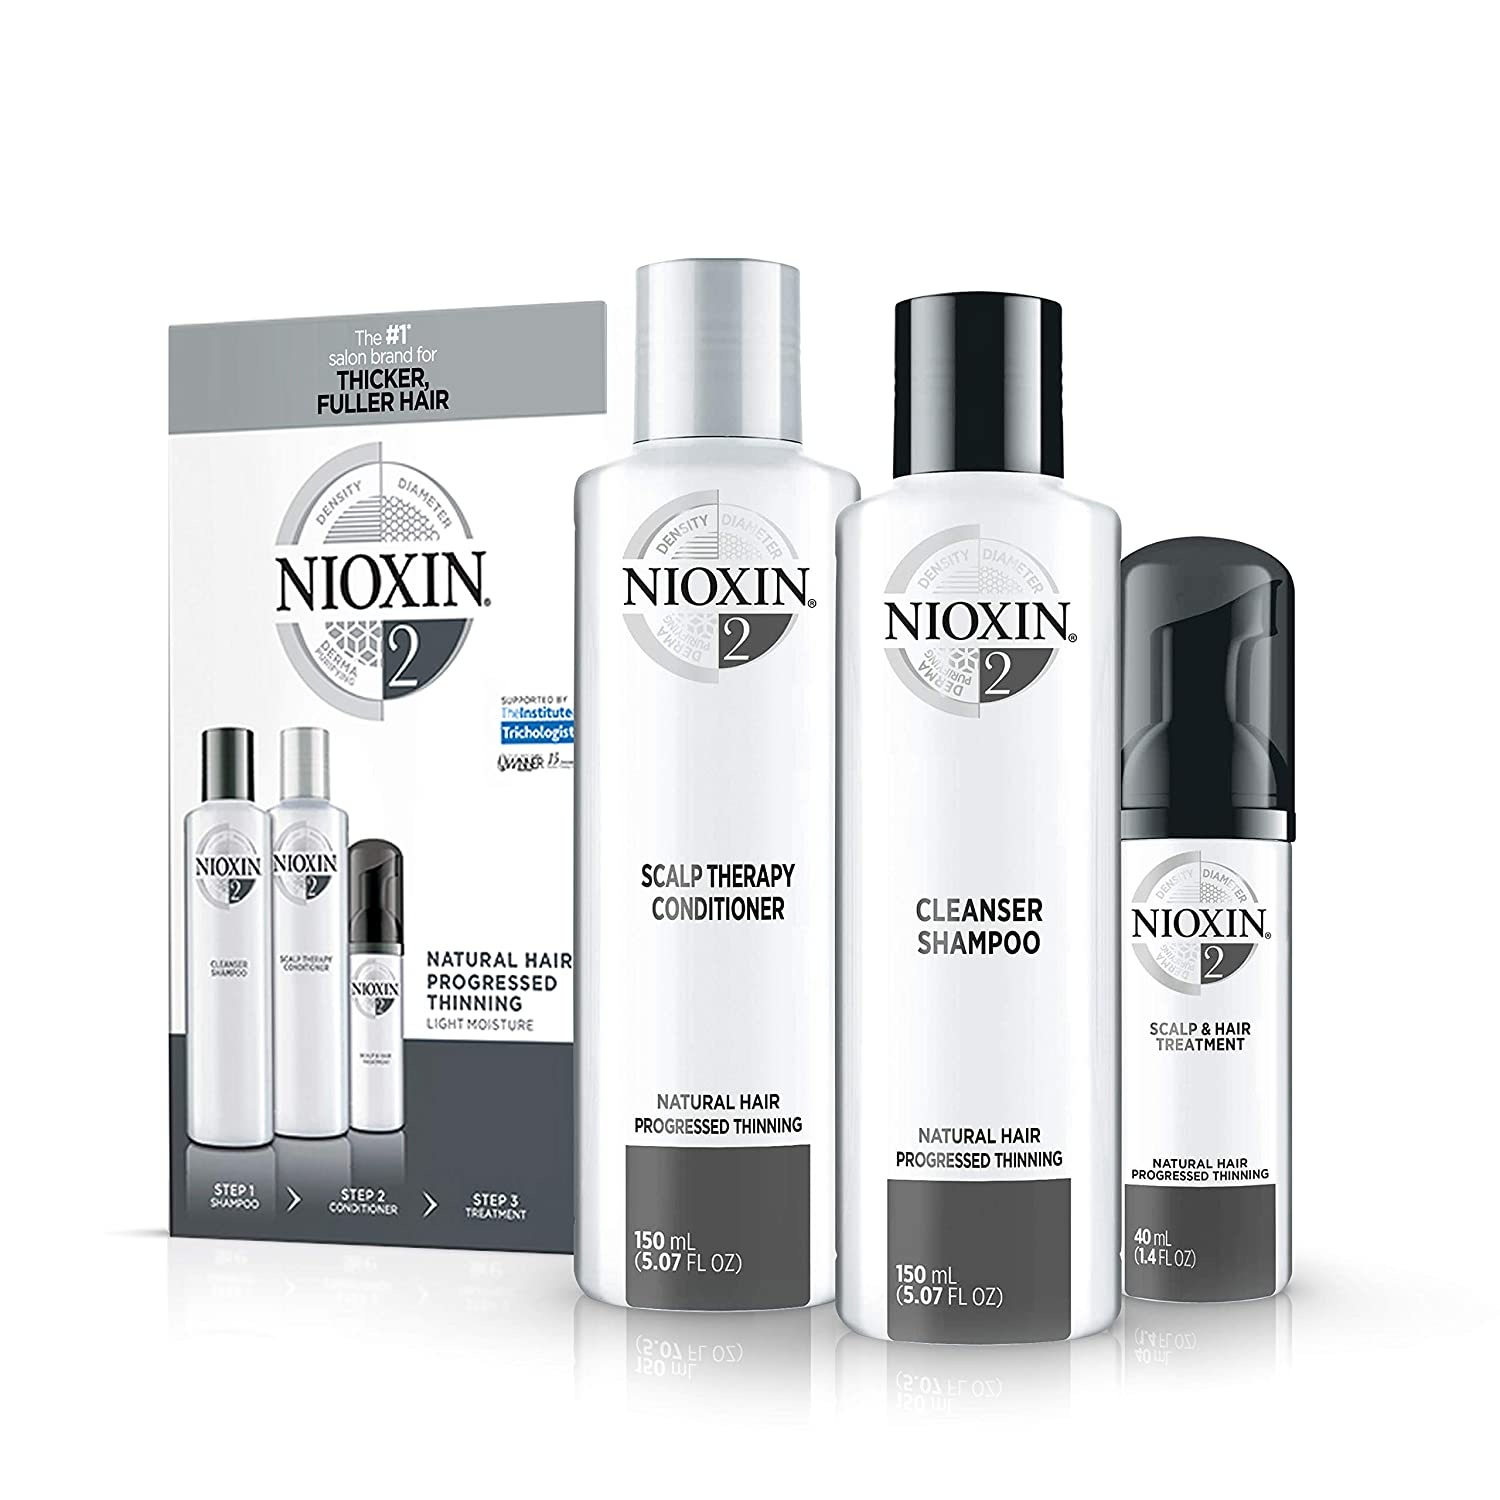 Nioxin System 2 Starter Kit Cleanser, Scalp Therapy & Scalp Treatment natural Hair Progressed Thinning 1 kit